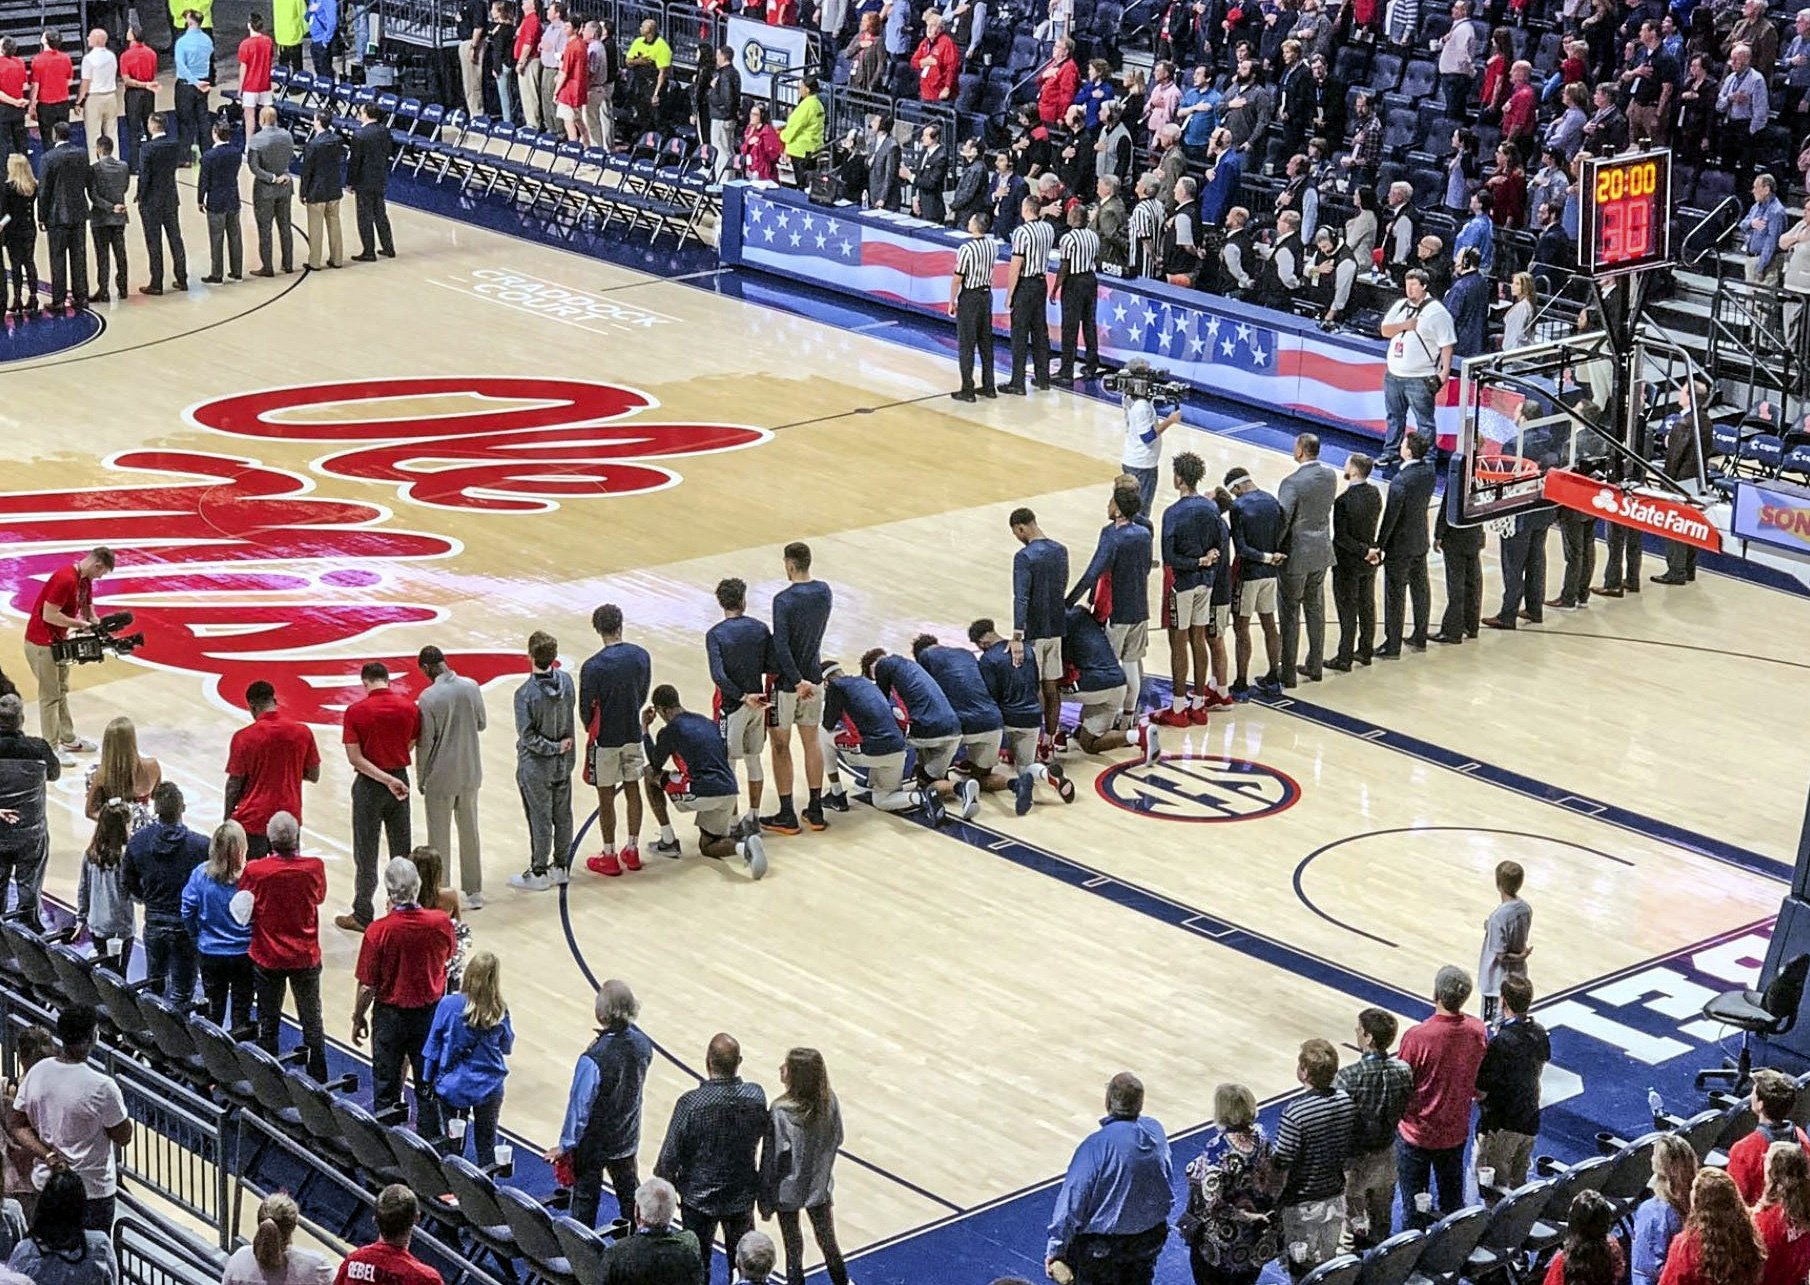 Ole Miss Players Take Knee During Anthem As Pro Confederate Rally Unfolds On Campus